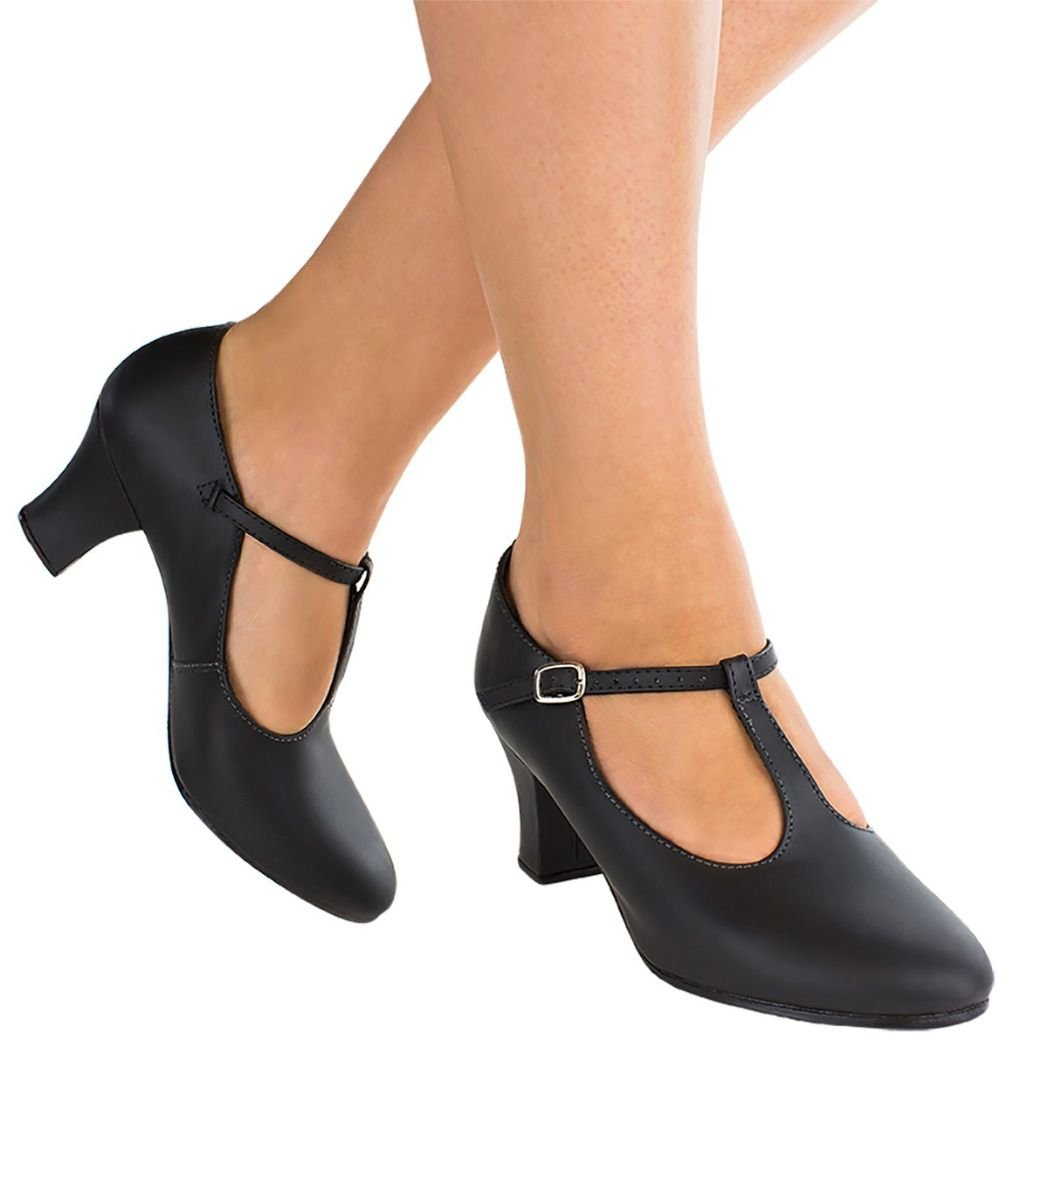 T-Strap Character Shoe CH40 2 Heel